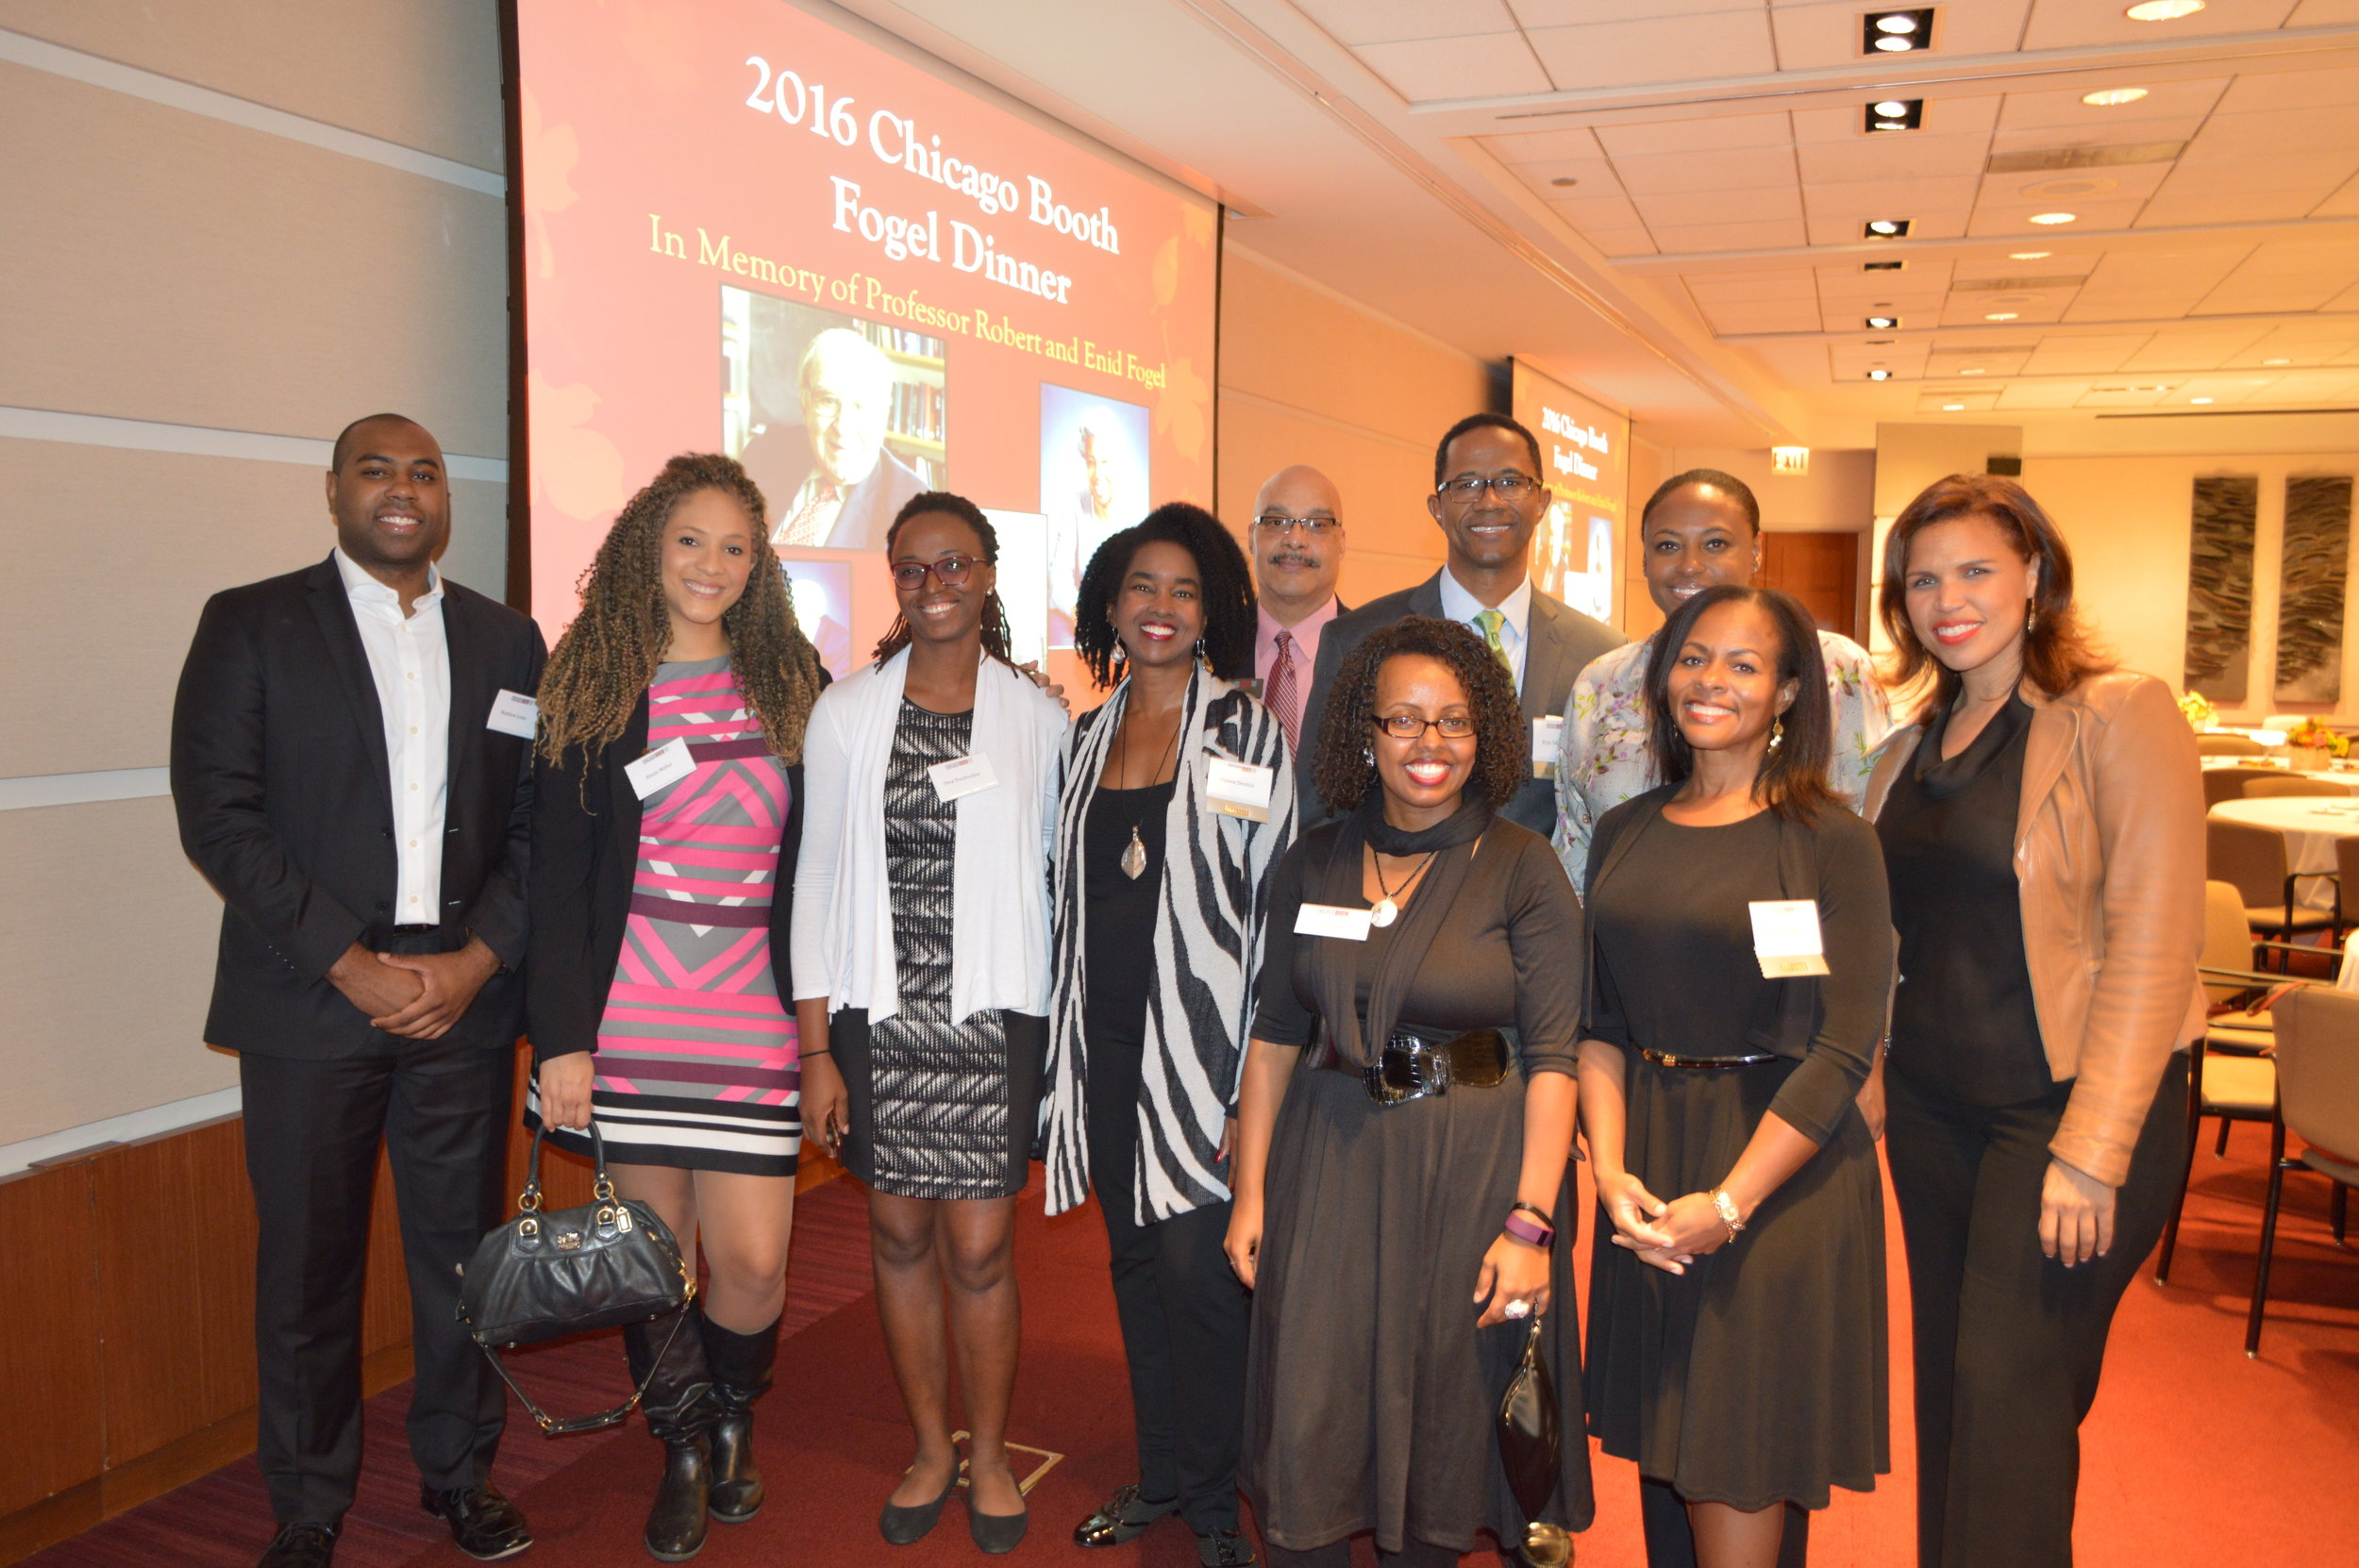 Booth alum and current students came together for a night of celebrating diversity and inclusion during the Fogel Dinner